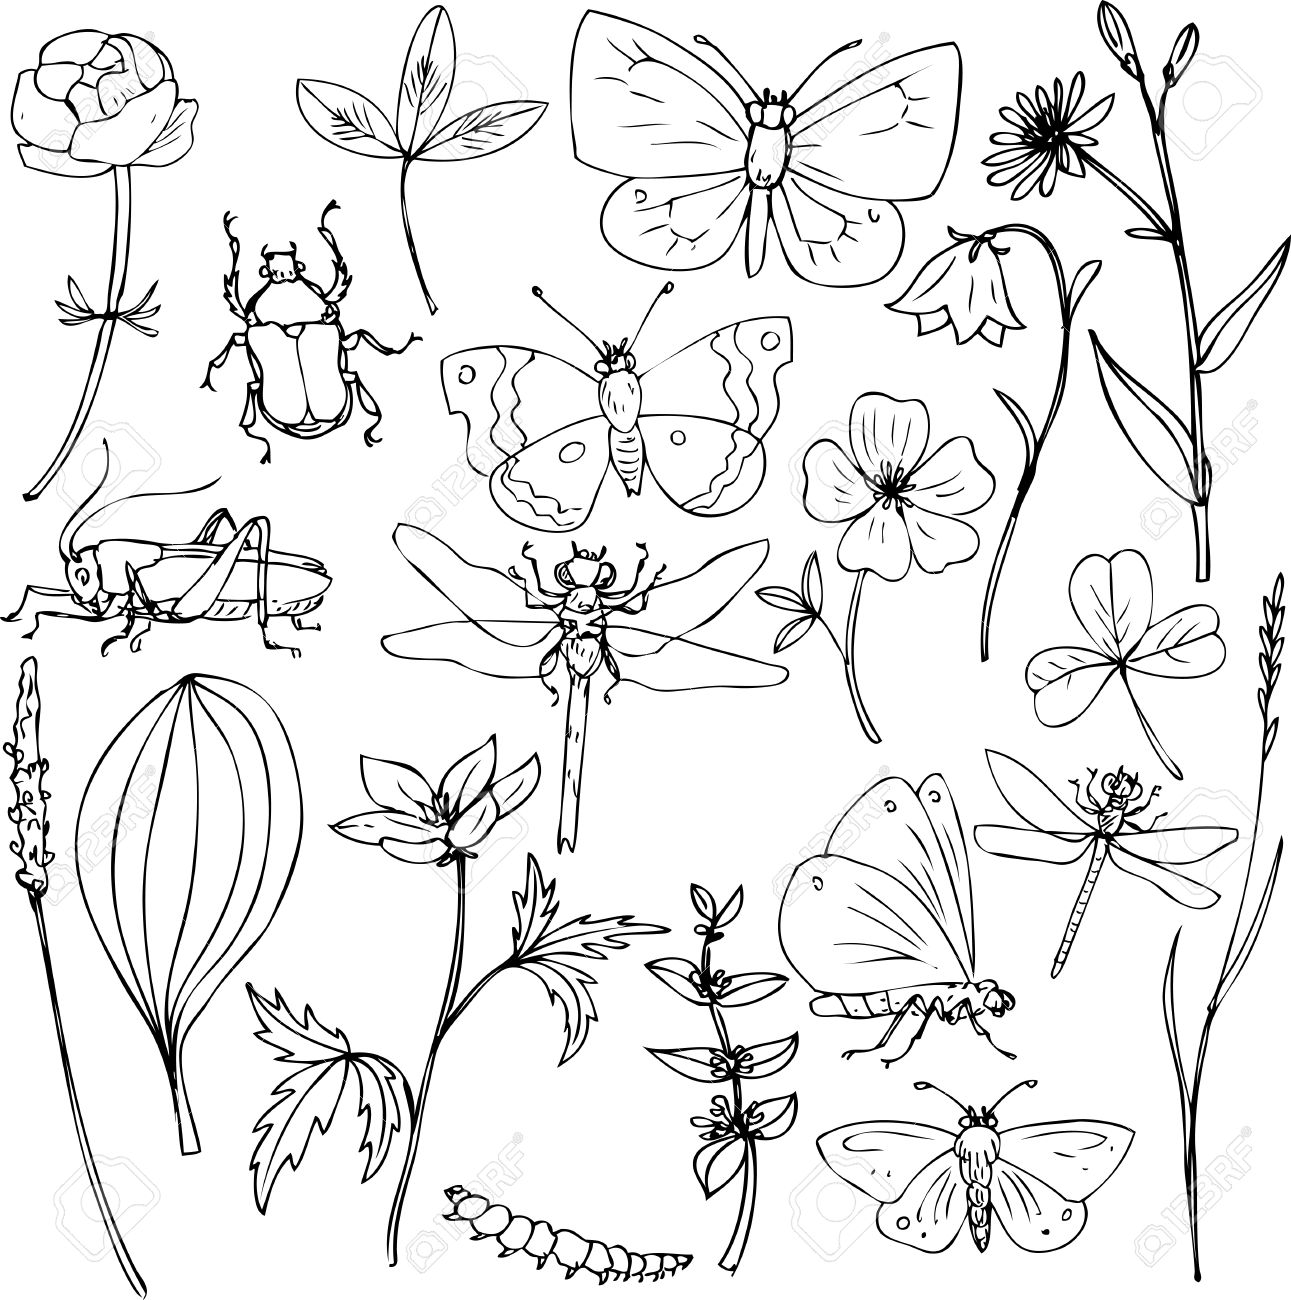 big set of ink drawing meadow objects plants flowers grass